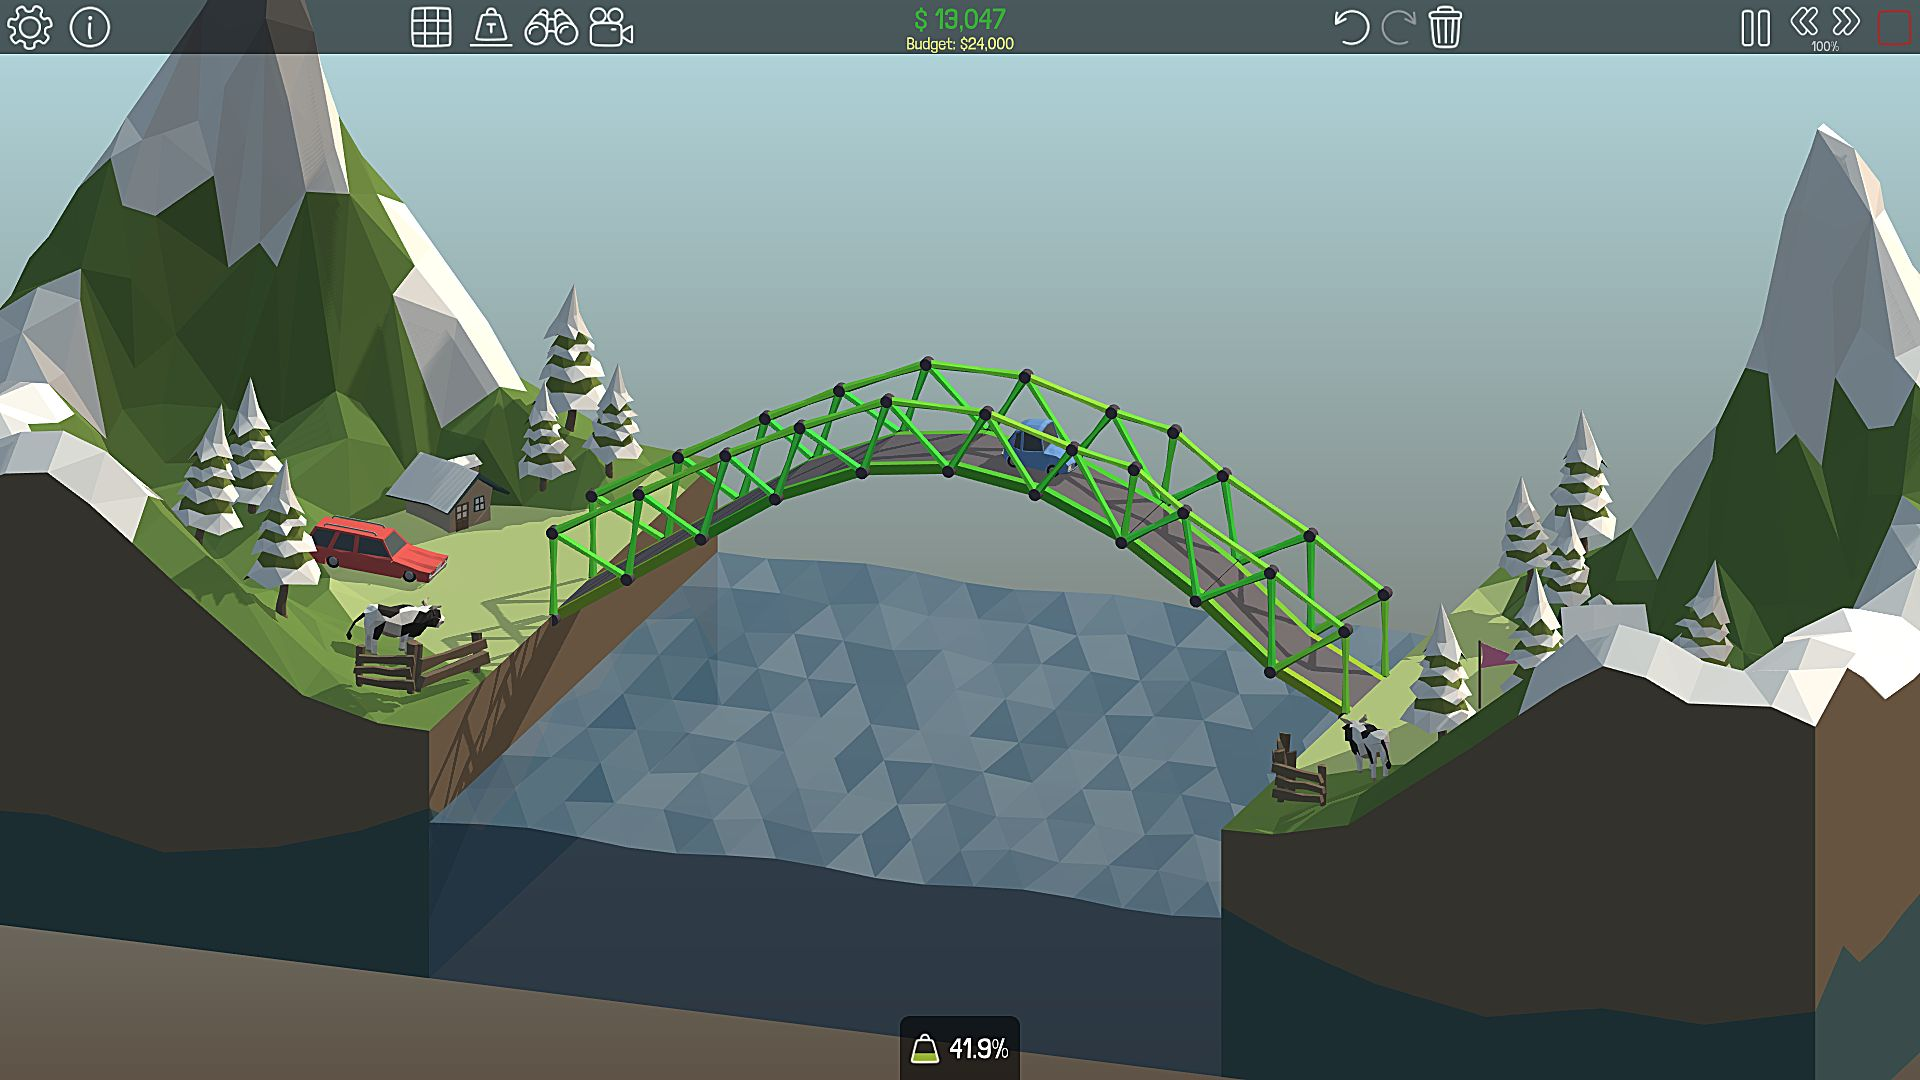 How To Build A Bridge Game